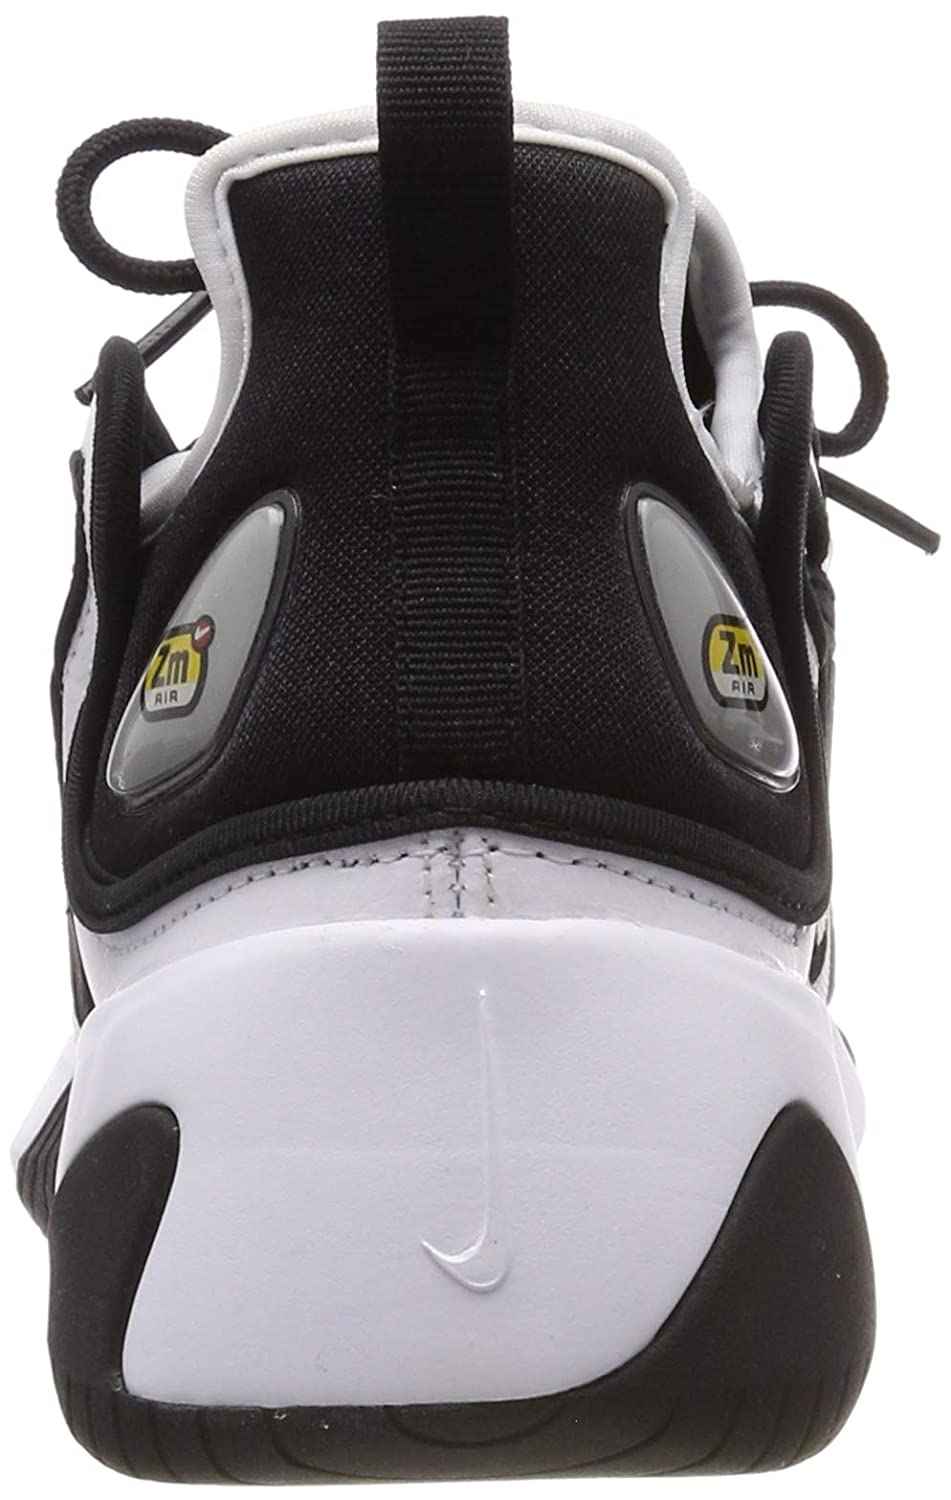 Nike Womens Zoom 2K White//Black Synthetic Cross-Trainers Shoes 9.5 M US